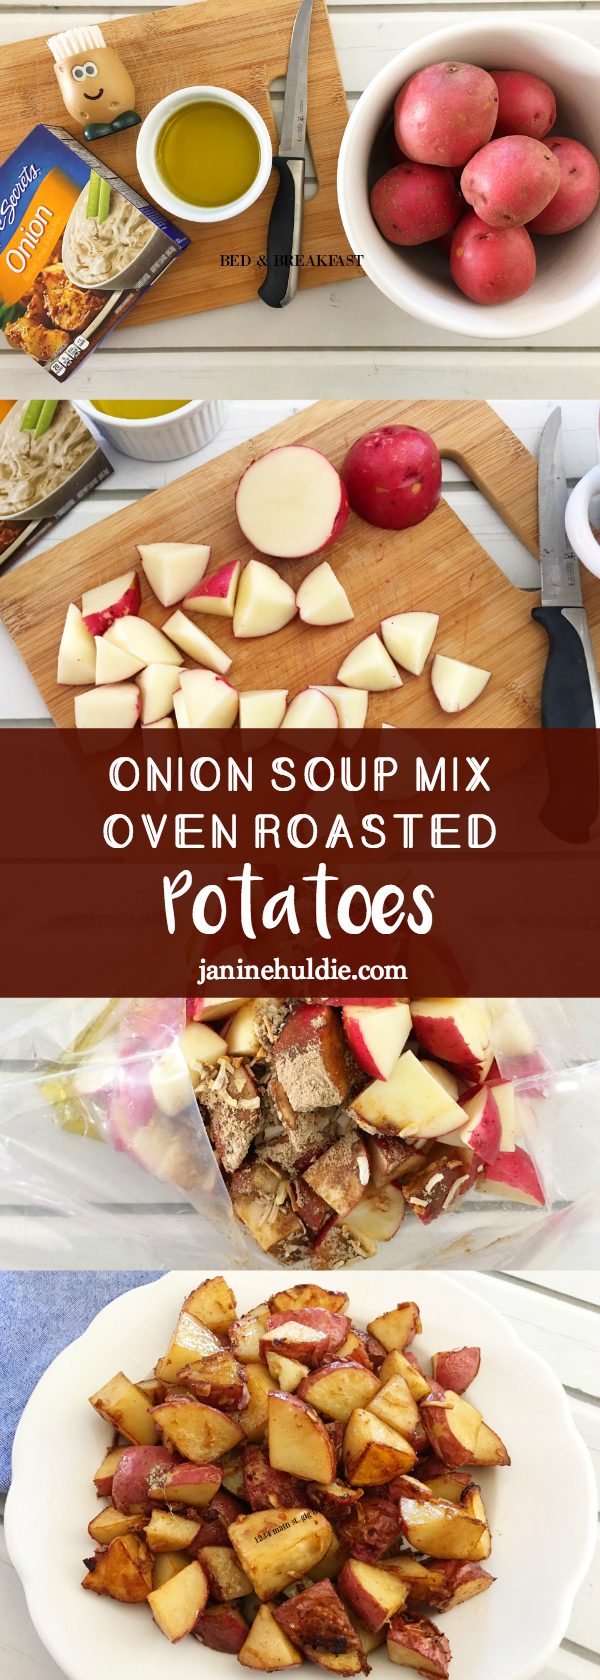 recipe: lipton onion soup potatoes [34]